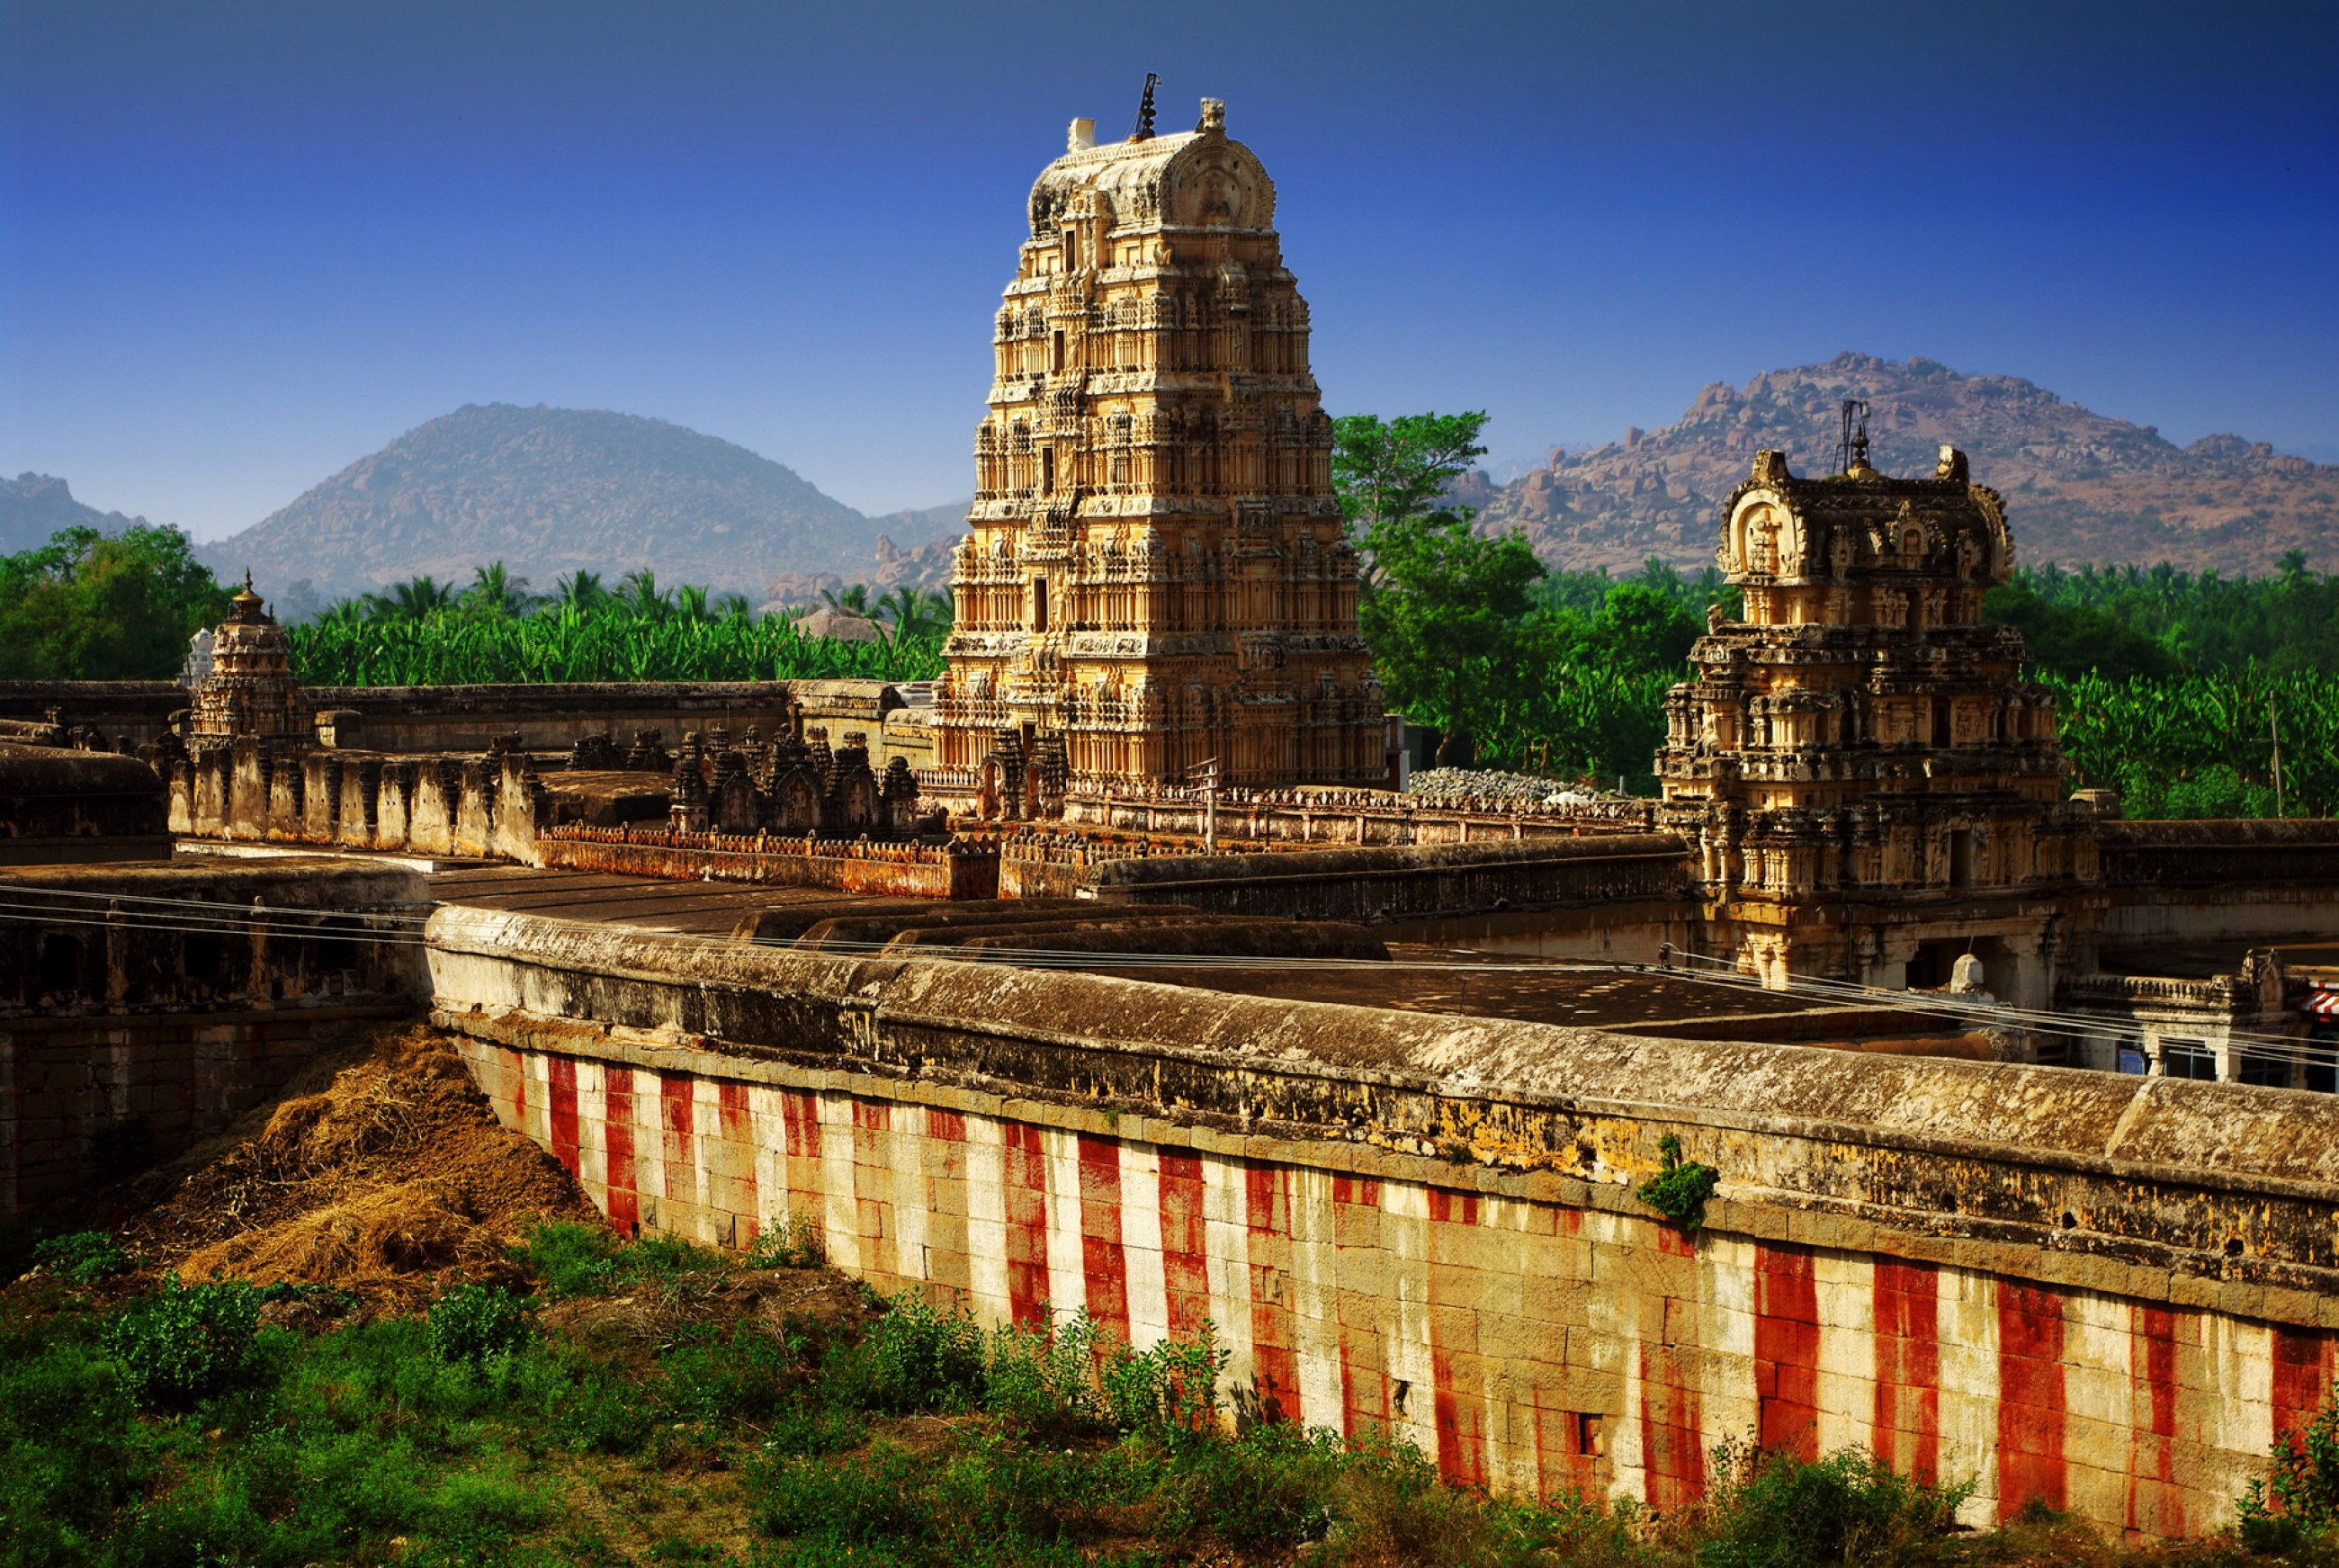 https://bubo.sk/uploads/galleries/4918/hampi-india-dreamstime-xl-26079304.jpg